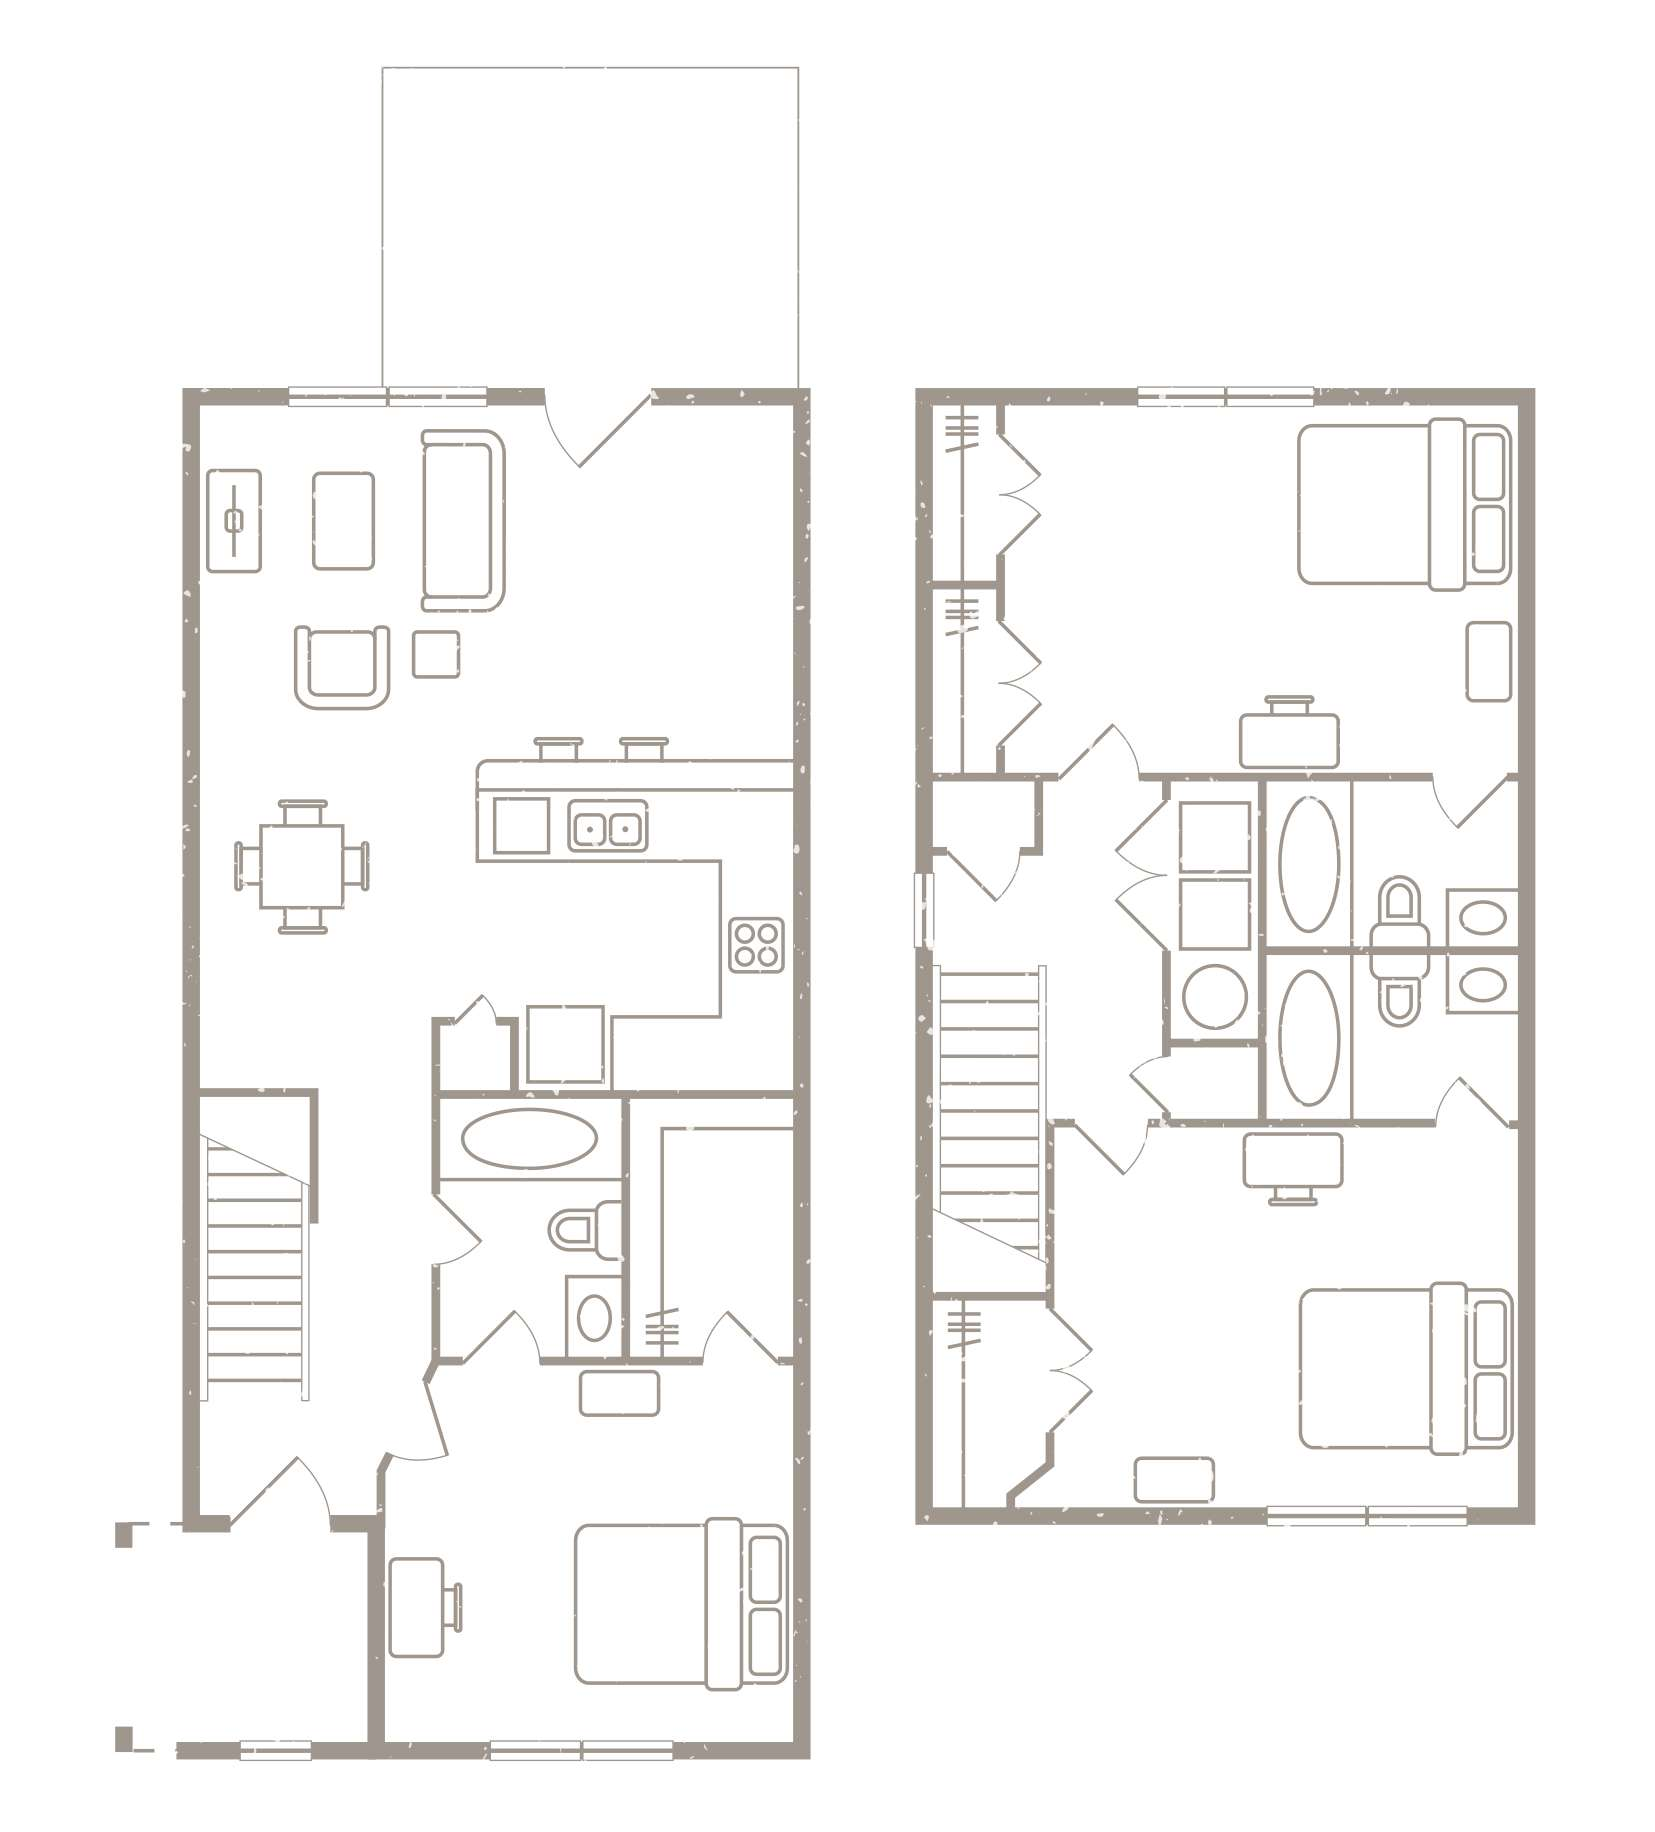 3 Bedroom 3 Bath At Redpoint Tallahassee